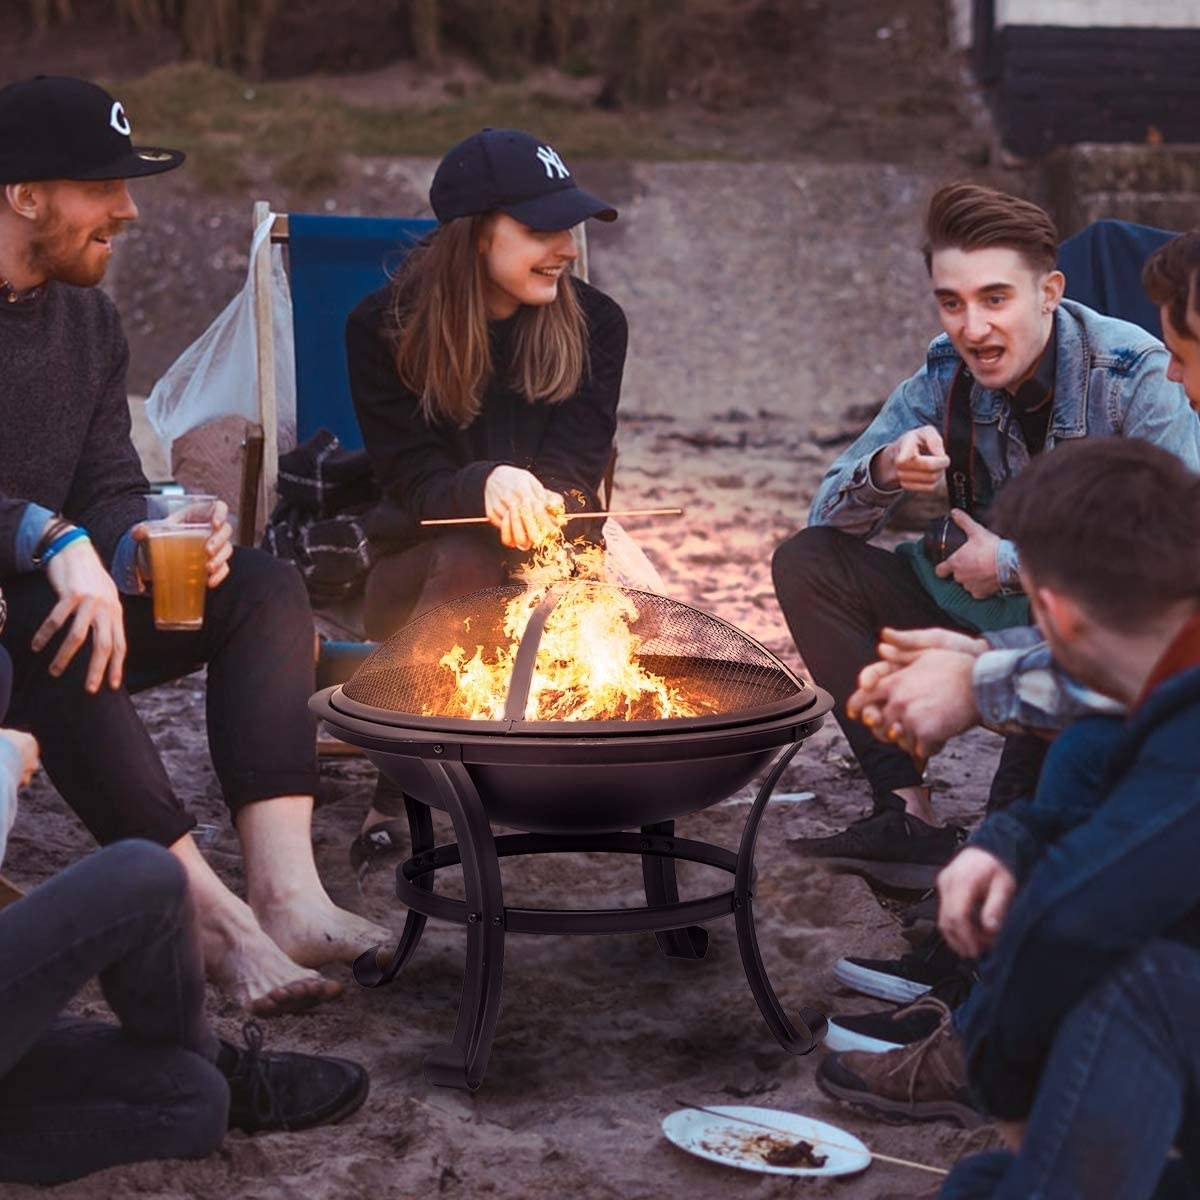 A group of people sitting around the elevated fire pit. The fire rises high above the gridded steal covering.